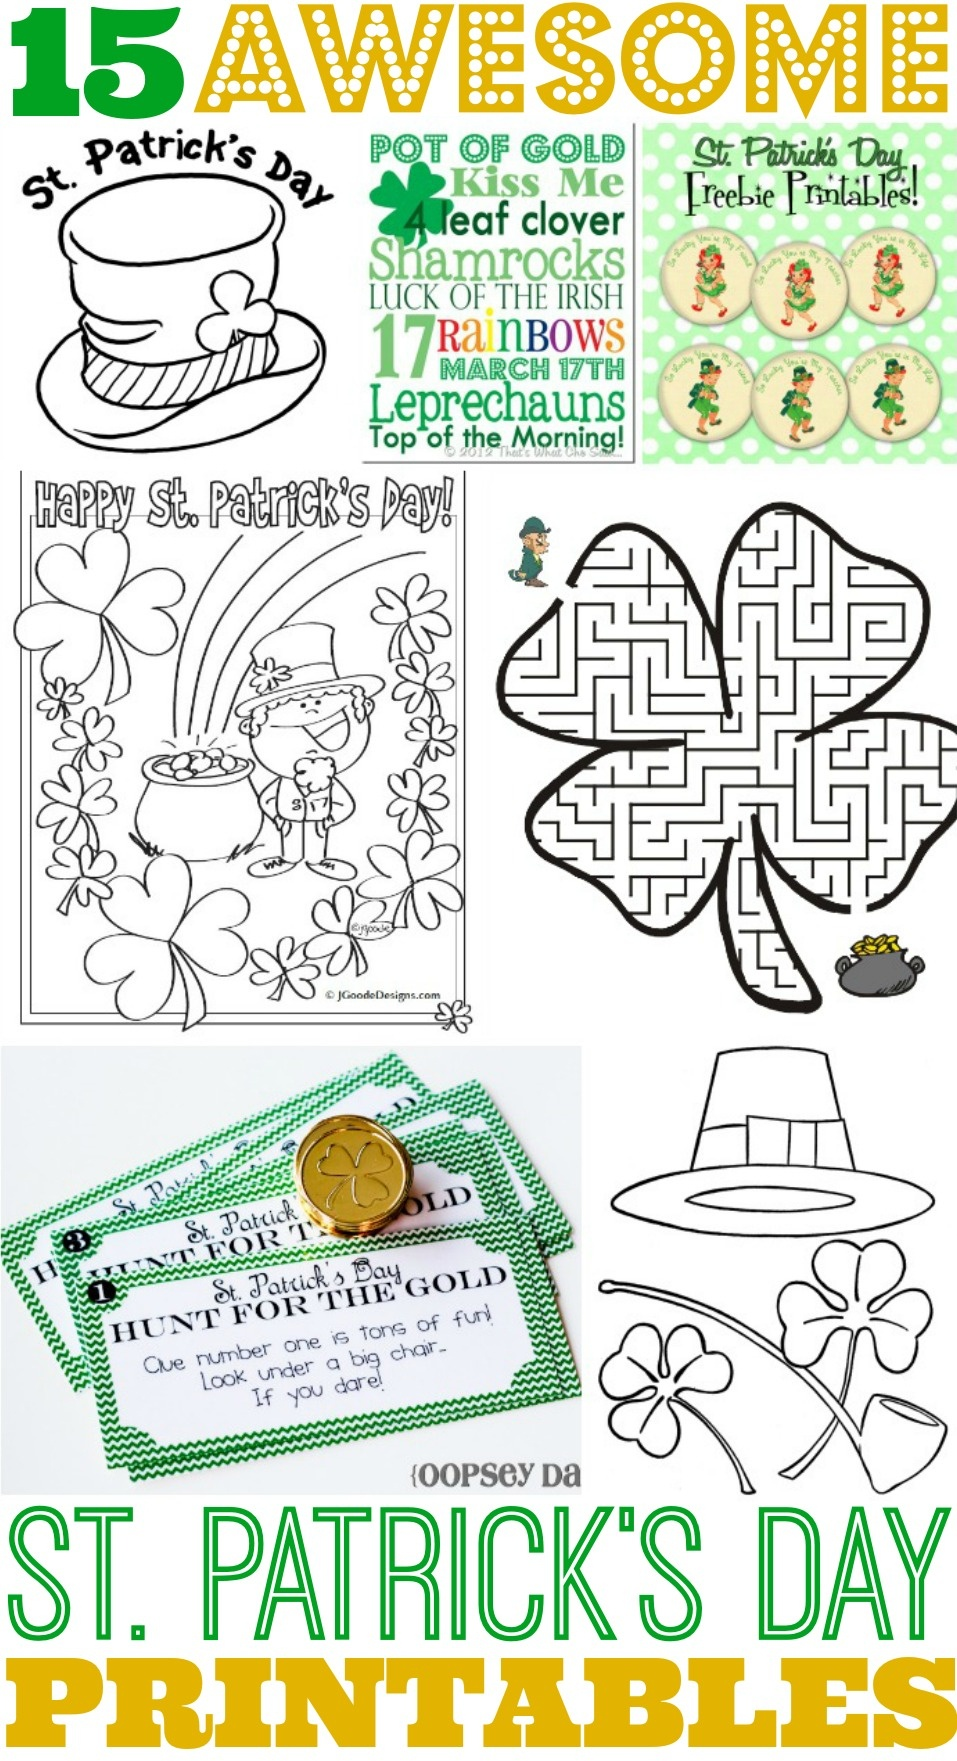 15 Awesome St. Patrick's Day Free Printables For Kids - Free St Patrick's Day Printables